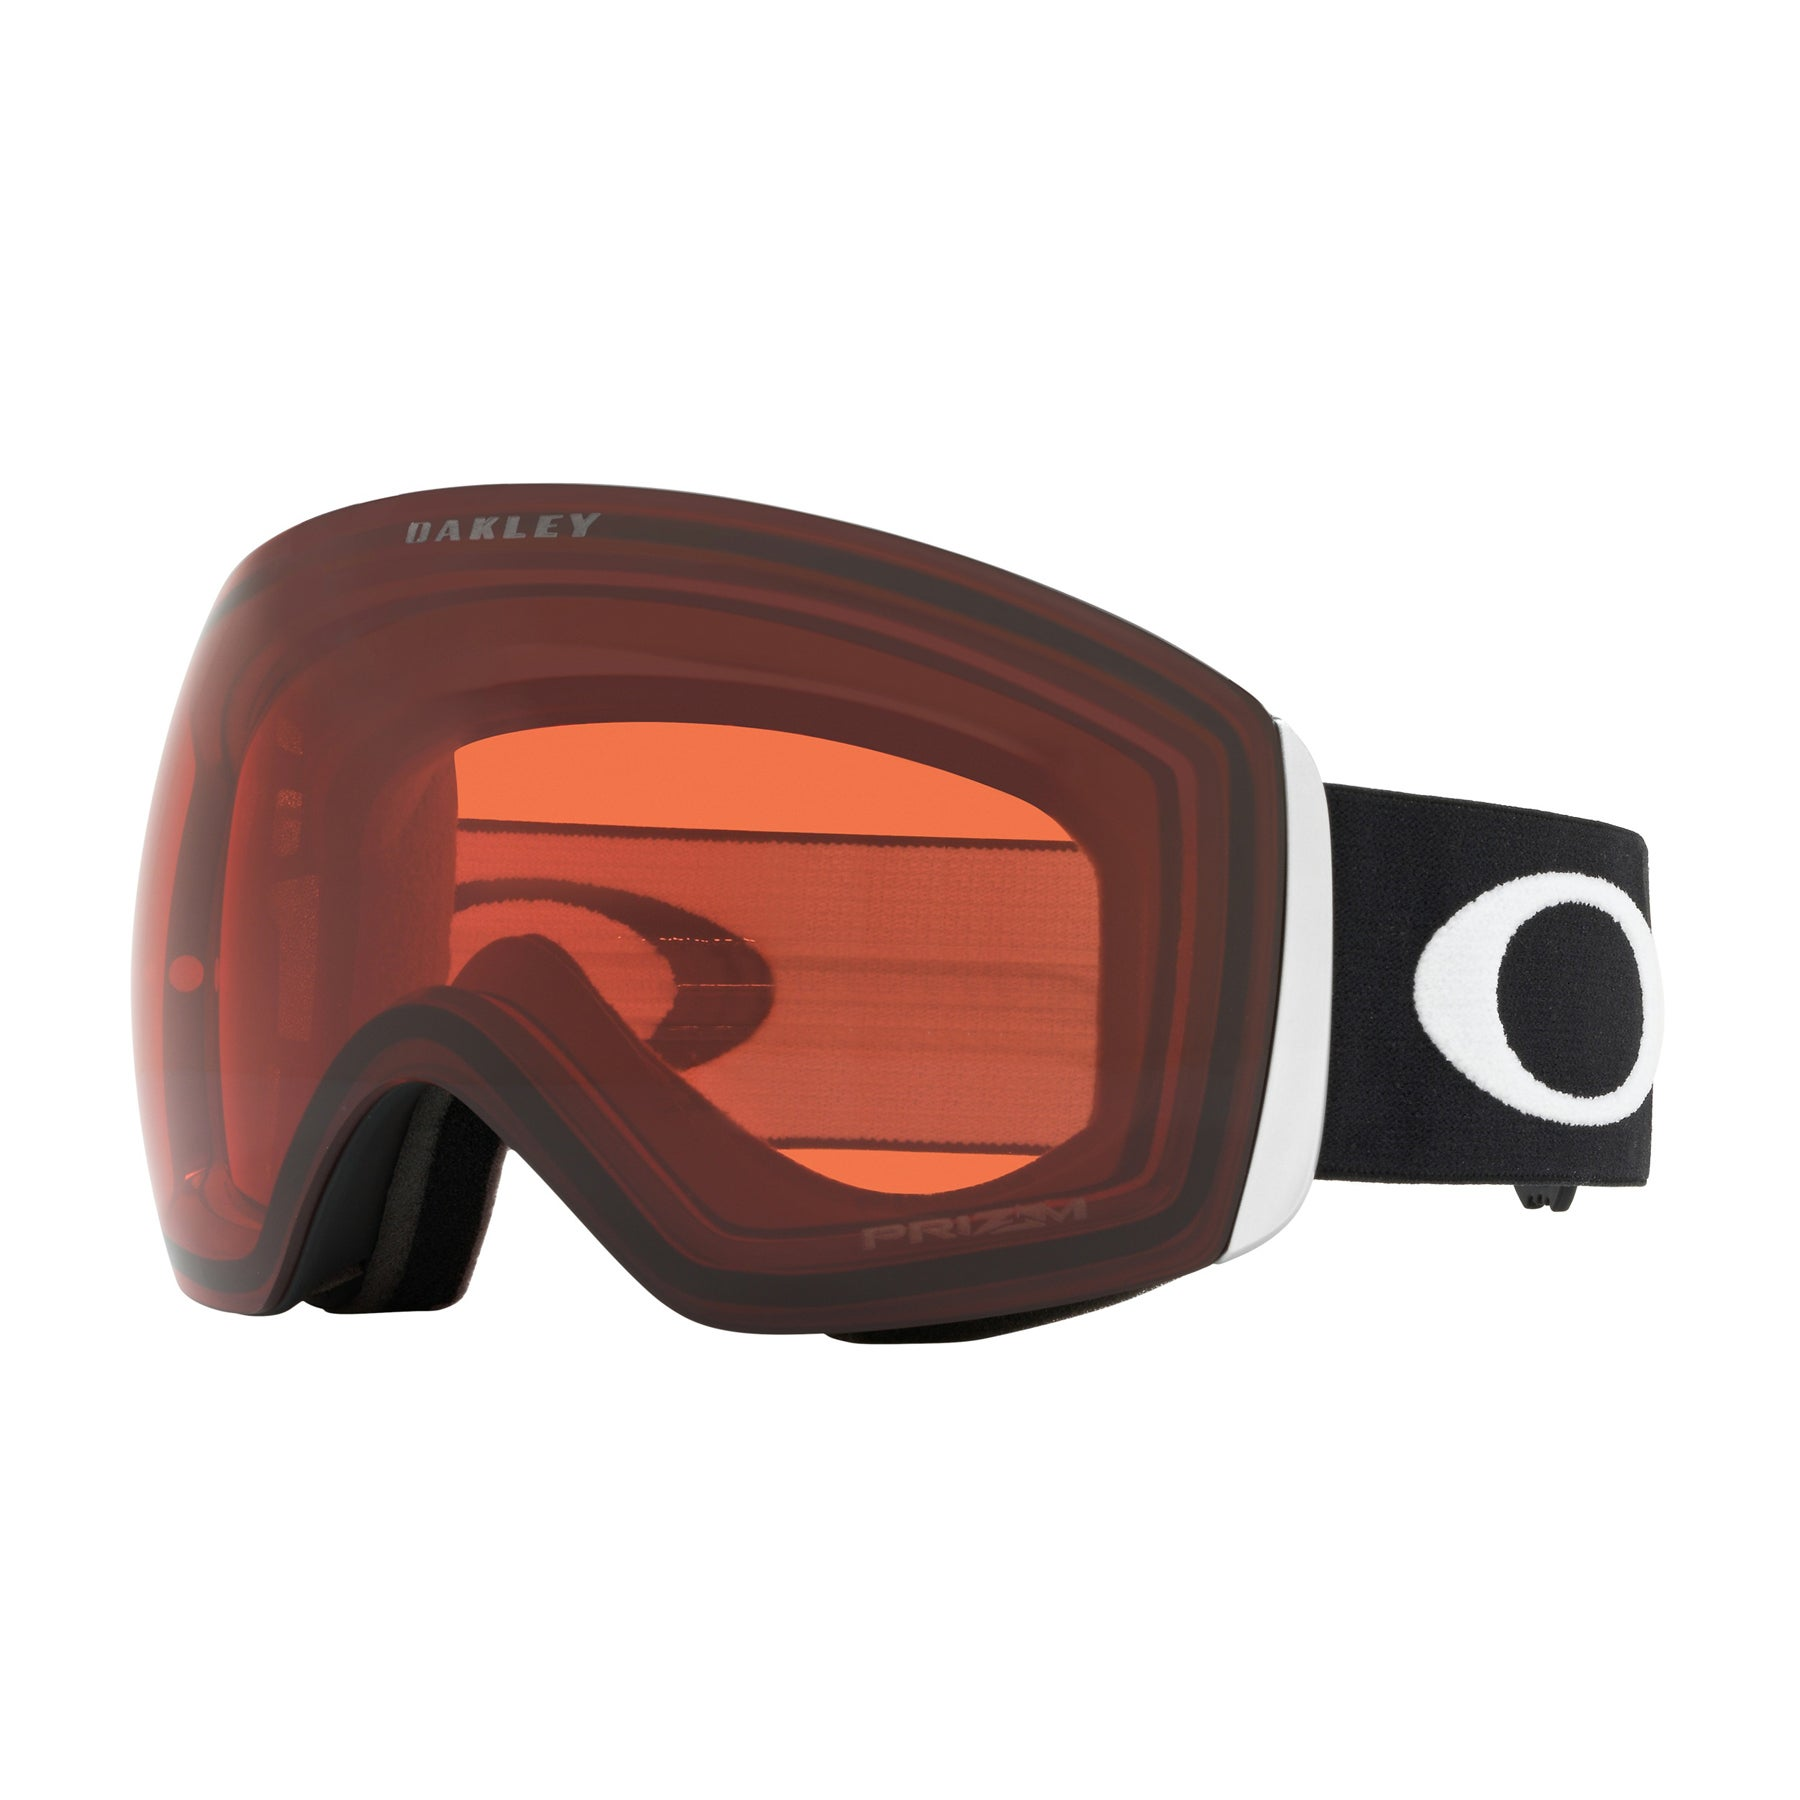 403ba0f771 Goggles - Free Delivery options on All Orders from Surfdome